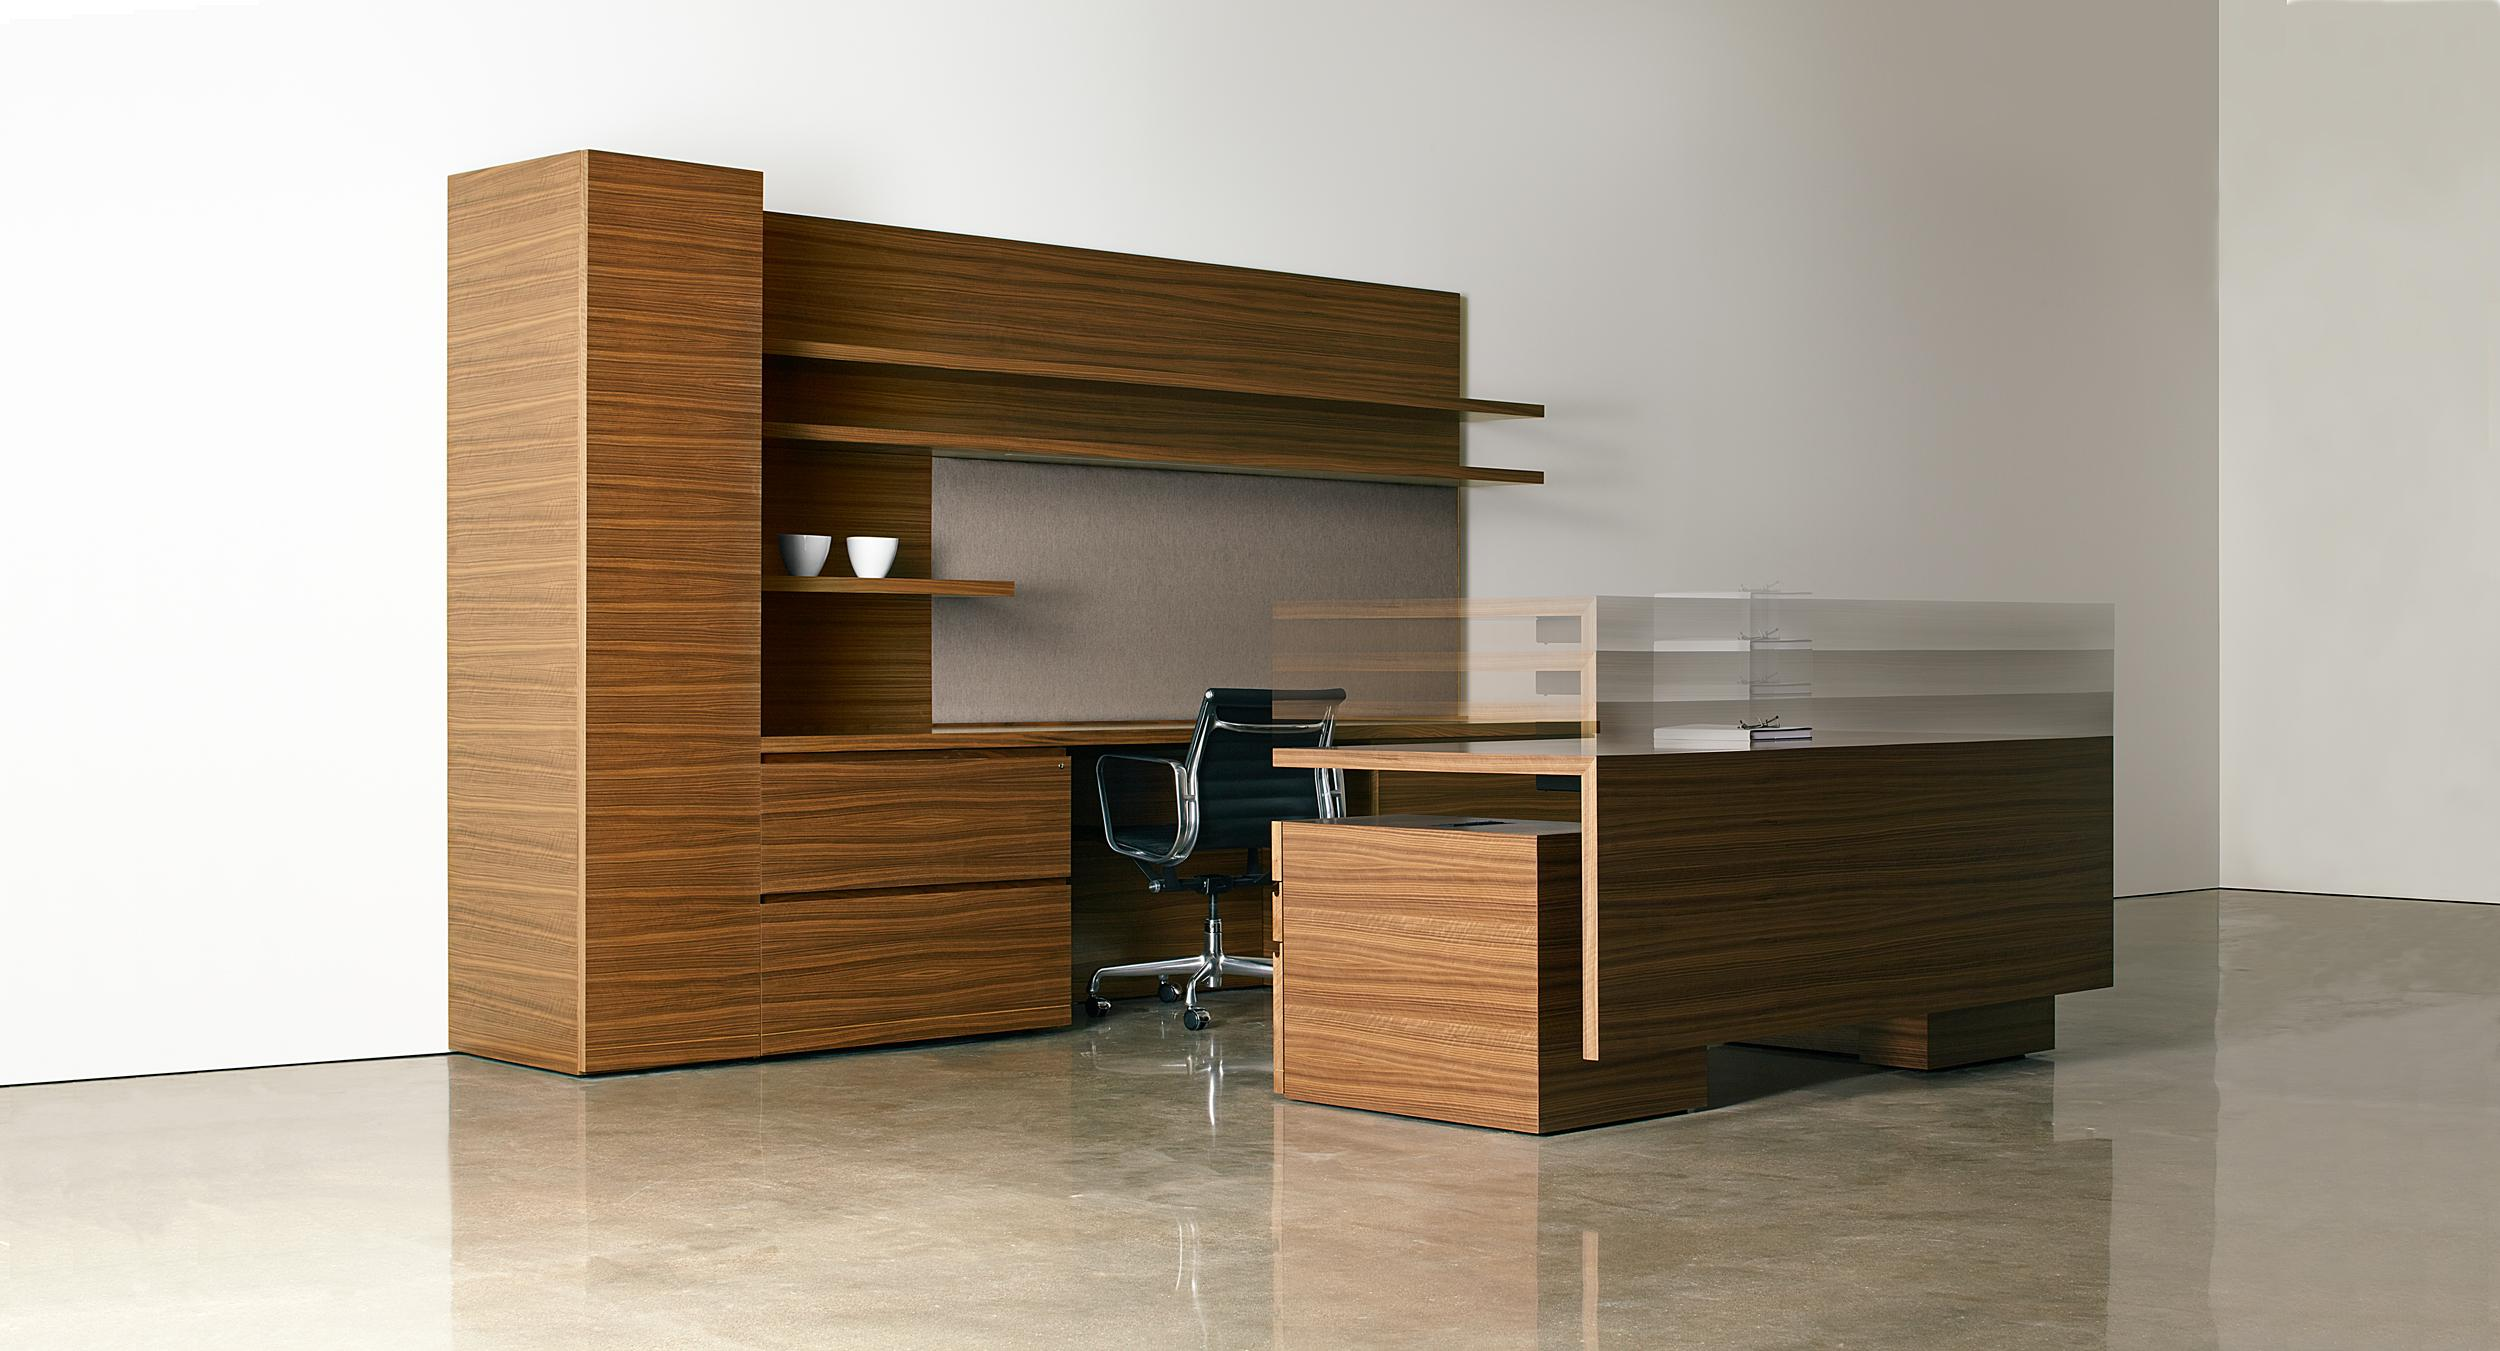 New Millennia offers the first beautifully proportioned adjustable-height wood desk.